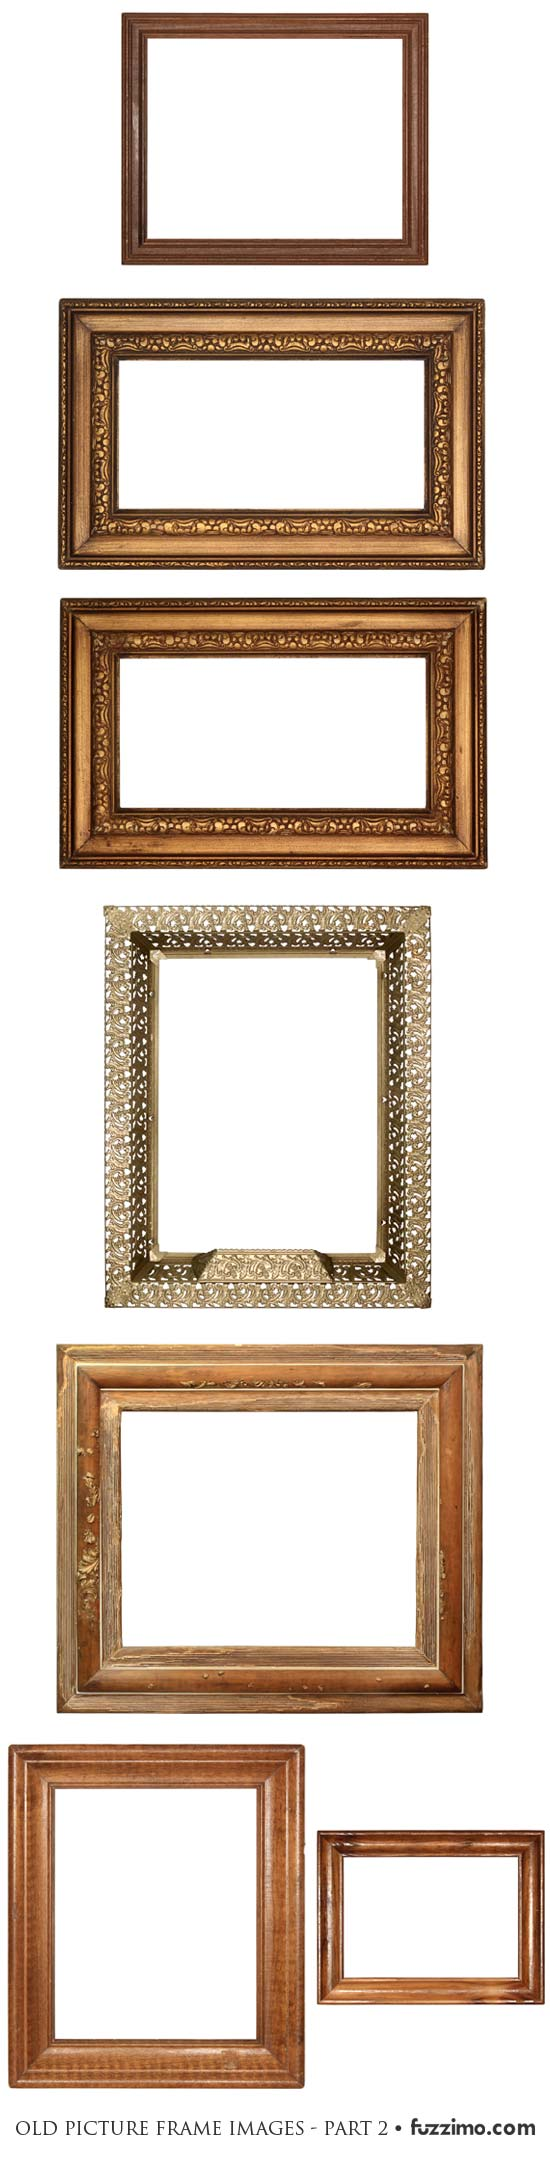 fzm-Antique-Old-Picture-Frame-Images-(2)-02b